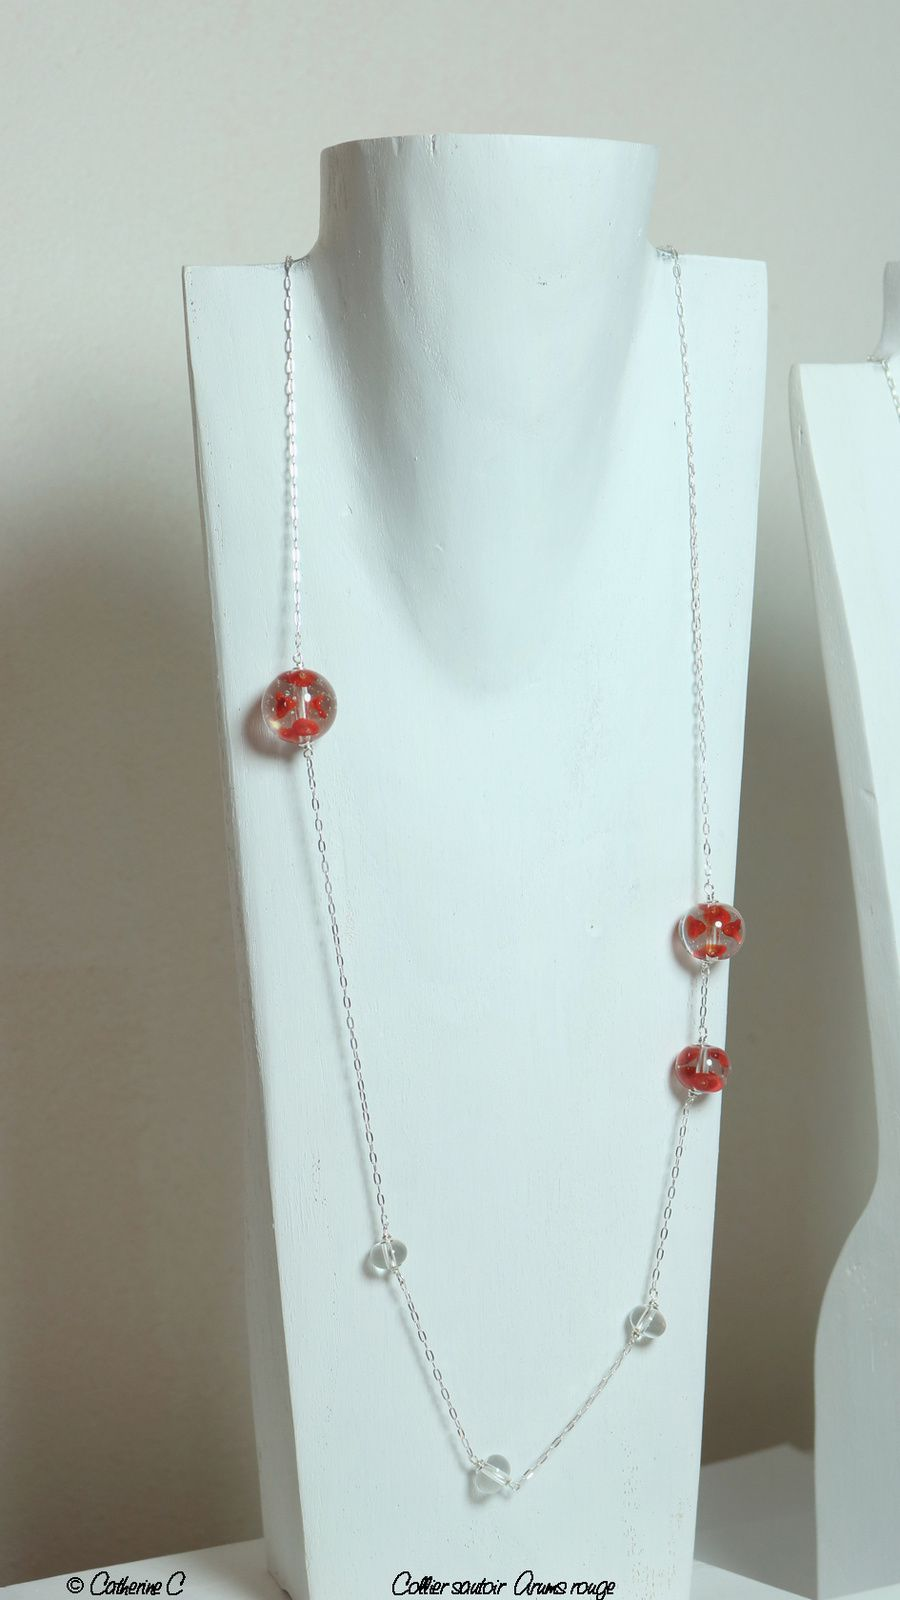 Collier sautoir Arums rouge